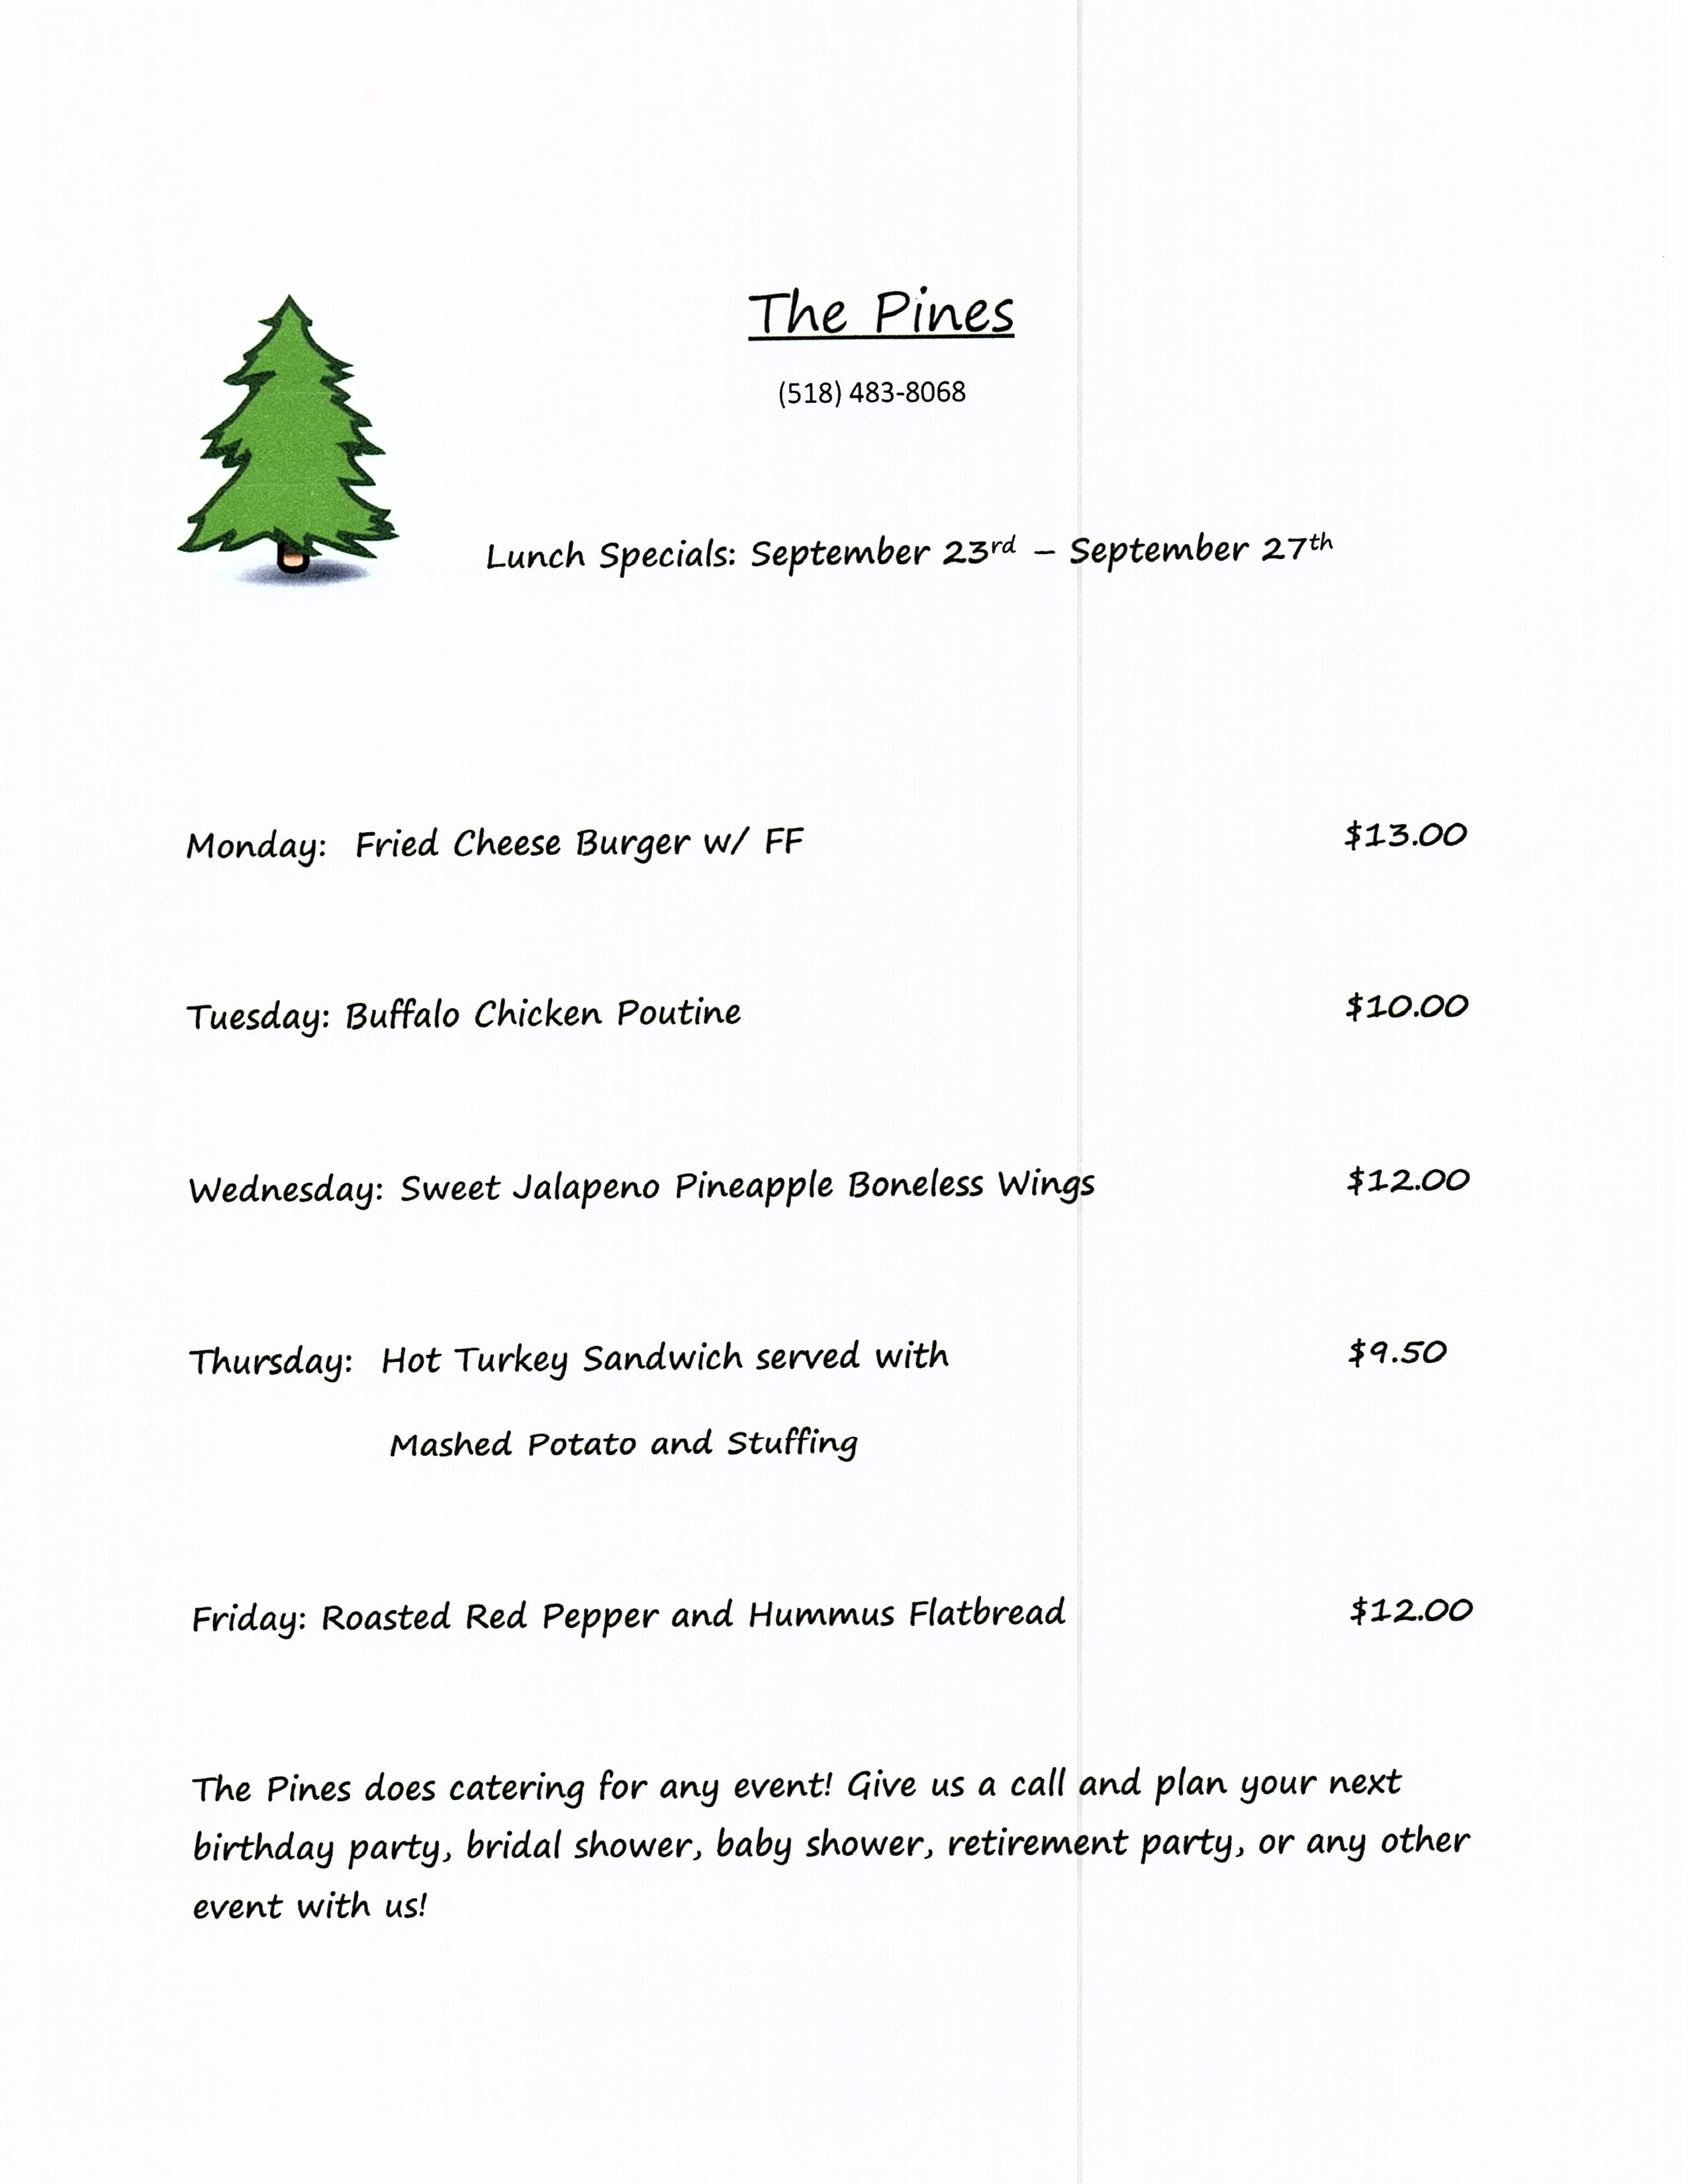 The Pines Tap and Table Lunch Specials Sept 23-27